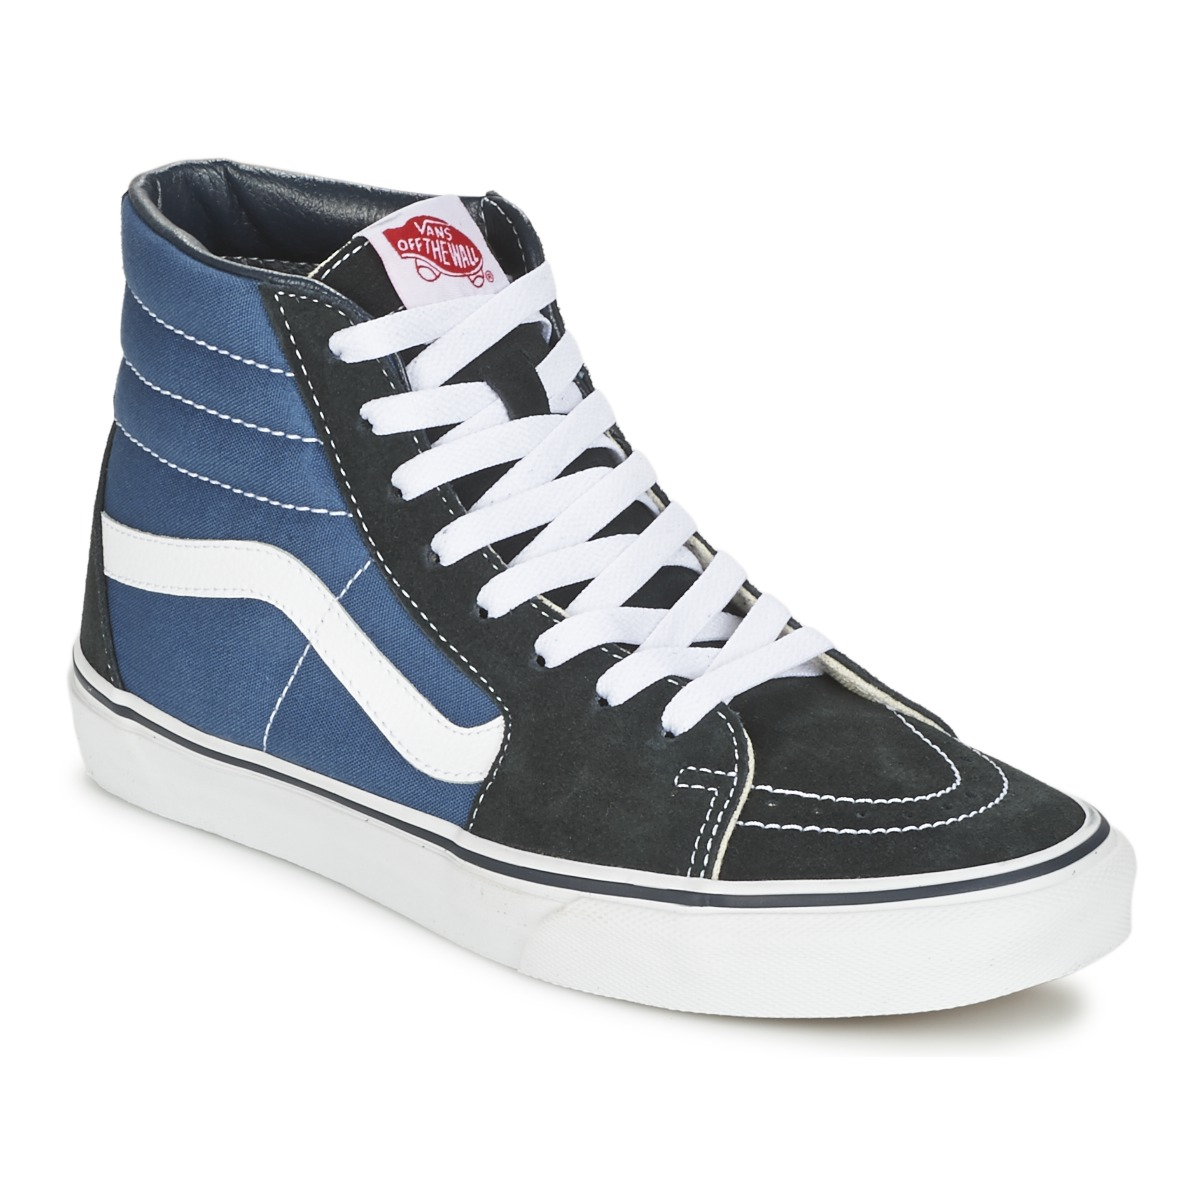 vans sk8 hi marine noir chaussures basket montante 80 00. Black Bedroom Furniture Sets. Home Design Ideas